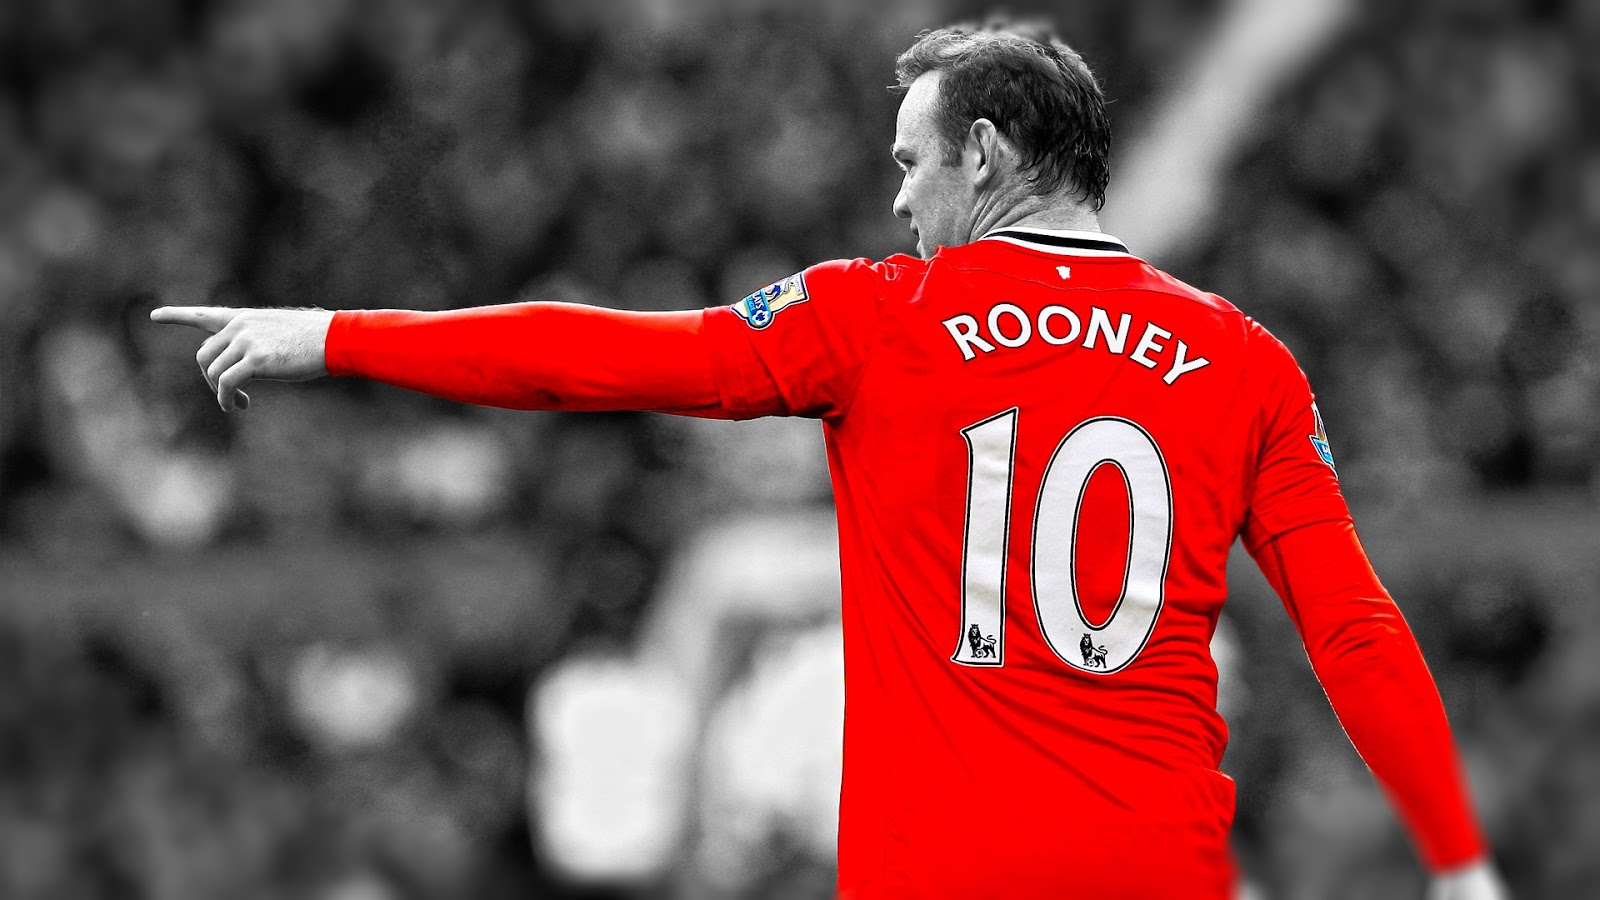 Wayne Rooney Number Wayne Rooney with number jersy